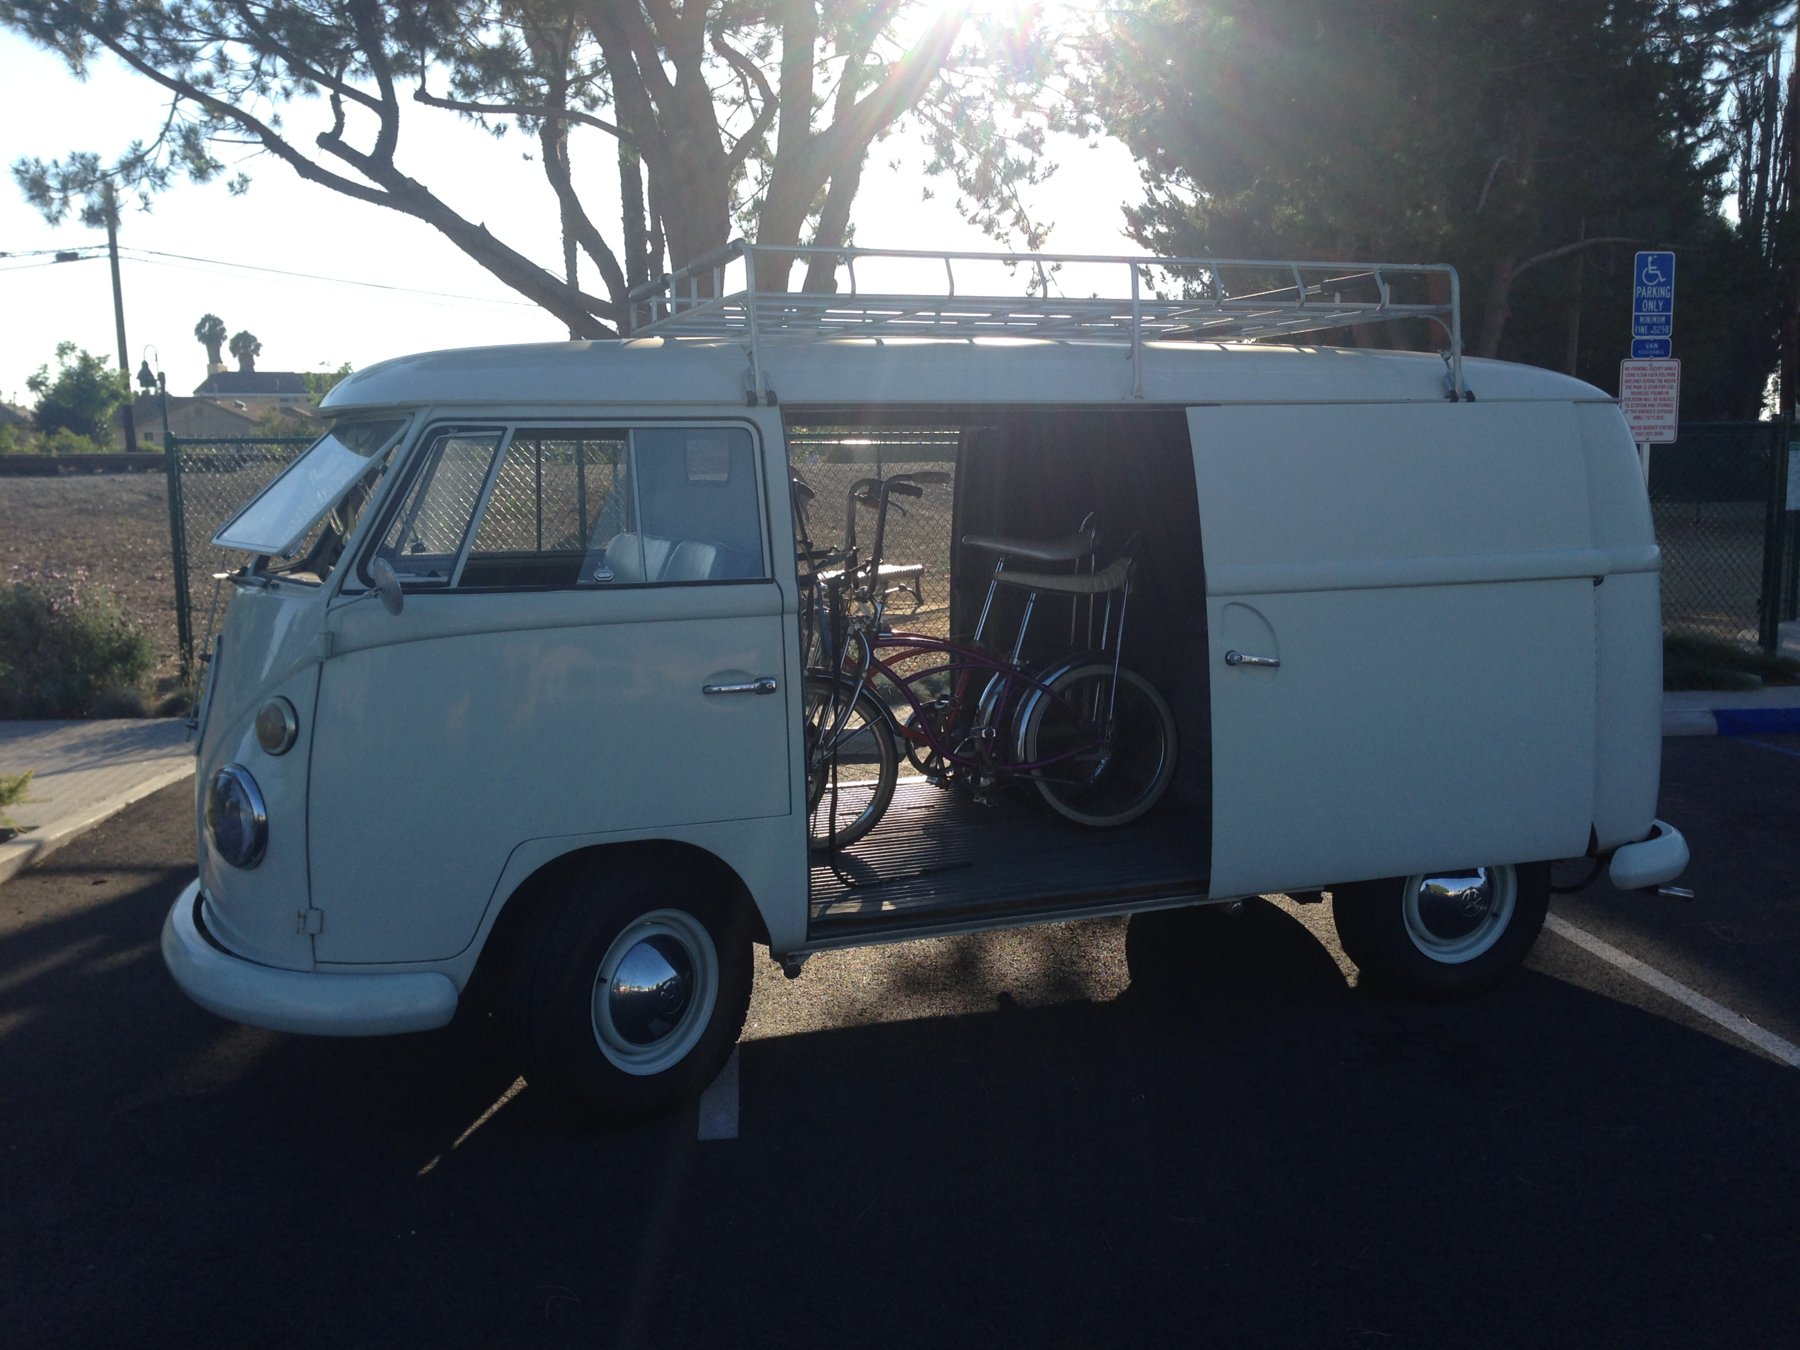 Bikes & Buses (and Cool Old Cars With Bikes) | The Classic and ...